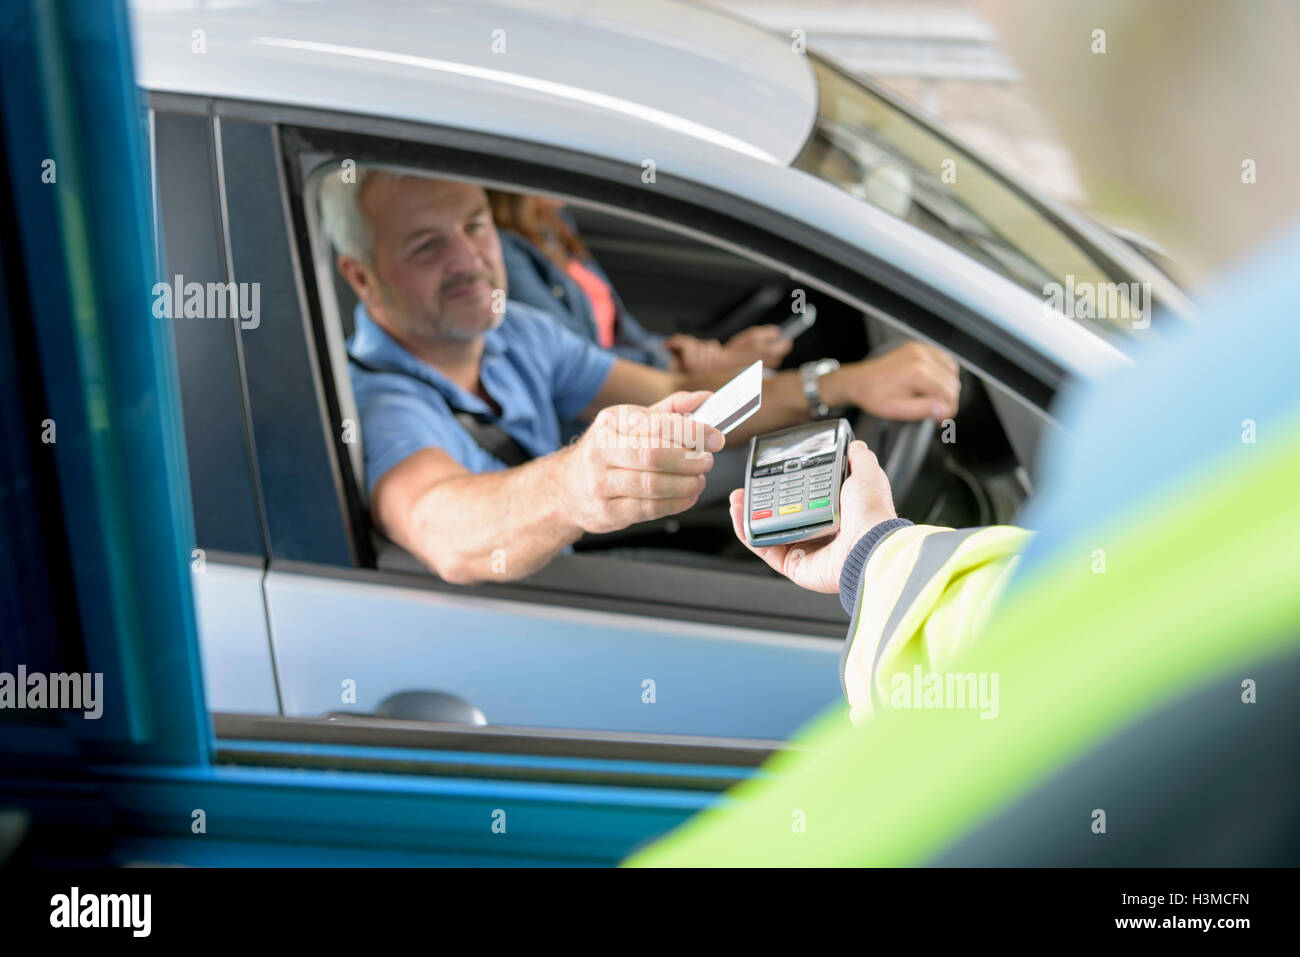 Driver in car paying toll booth at bridge using contactless card payment technology - Stock Image